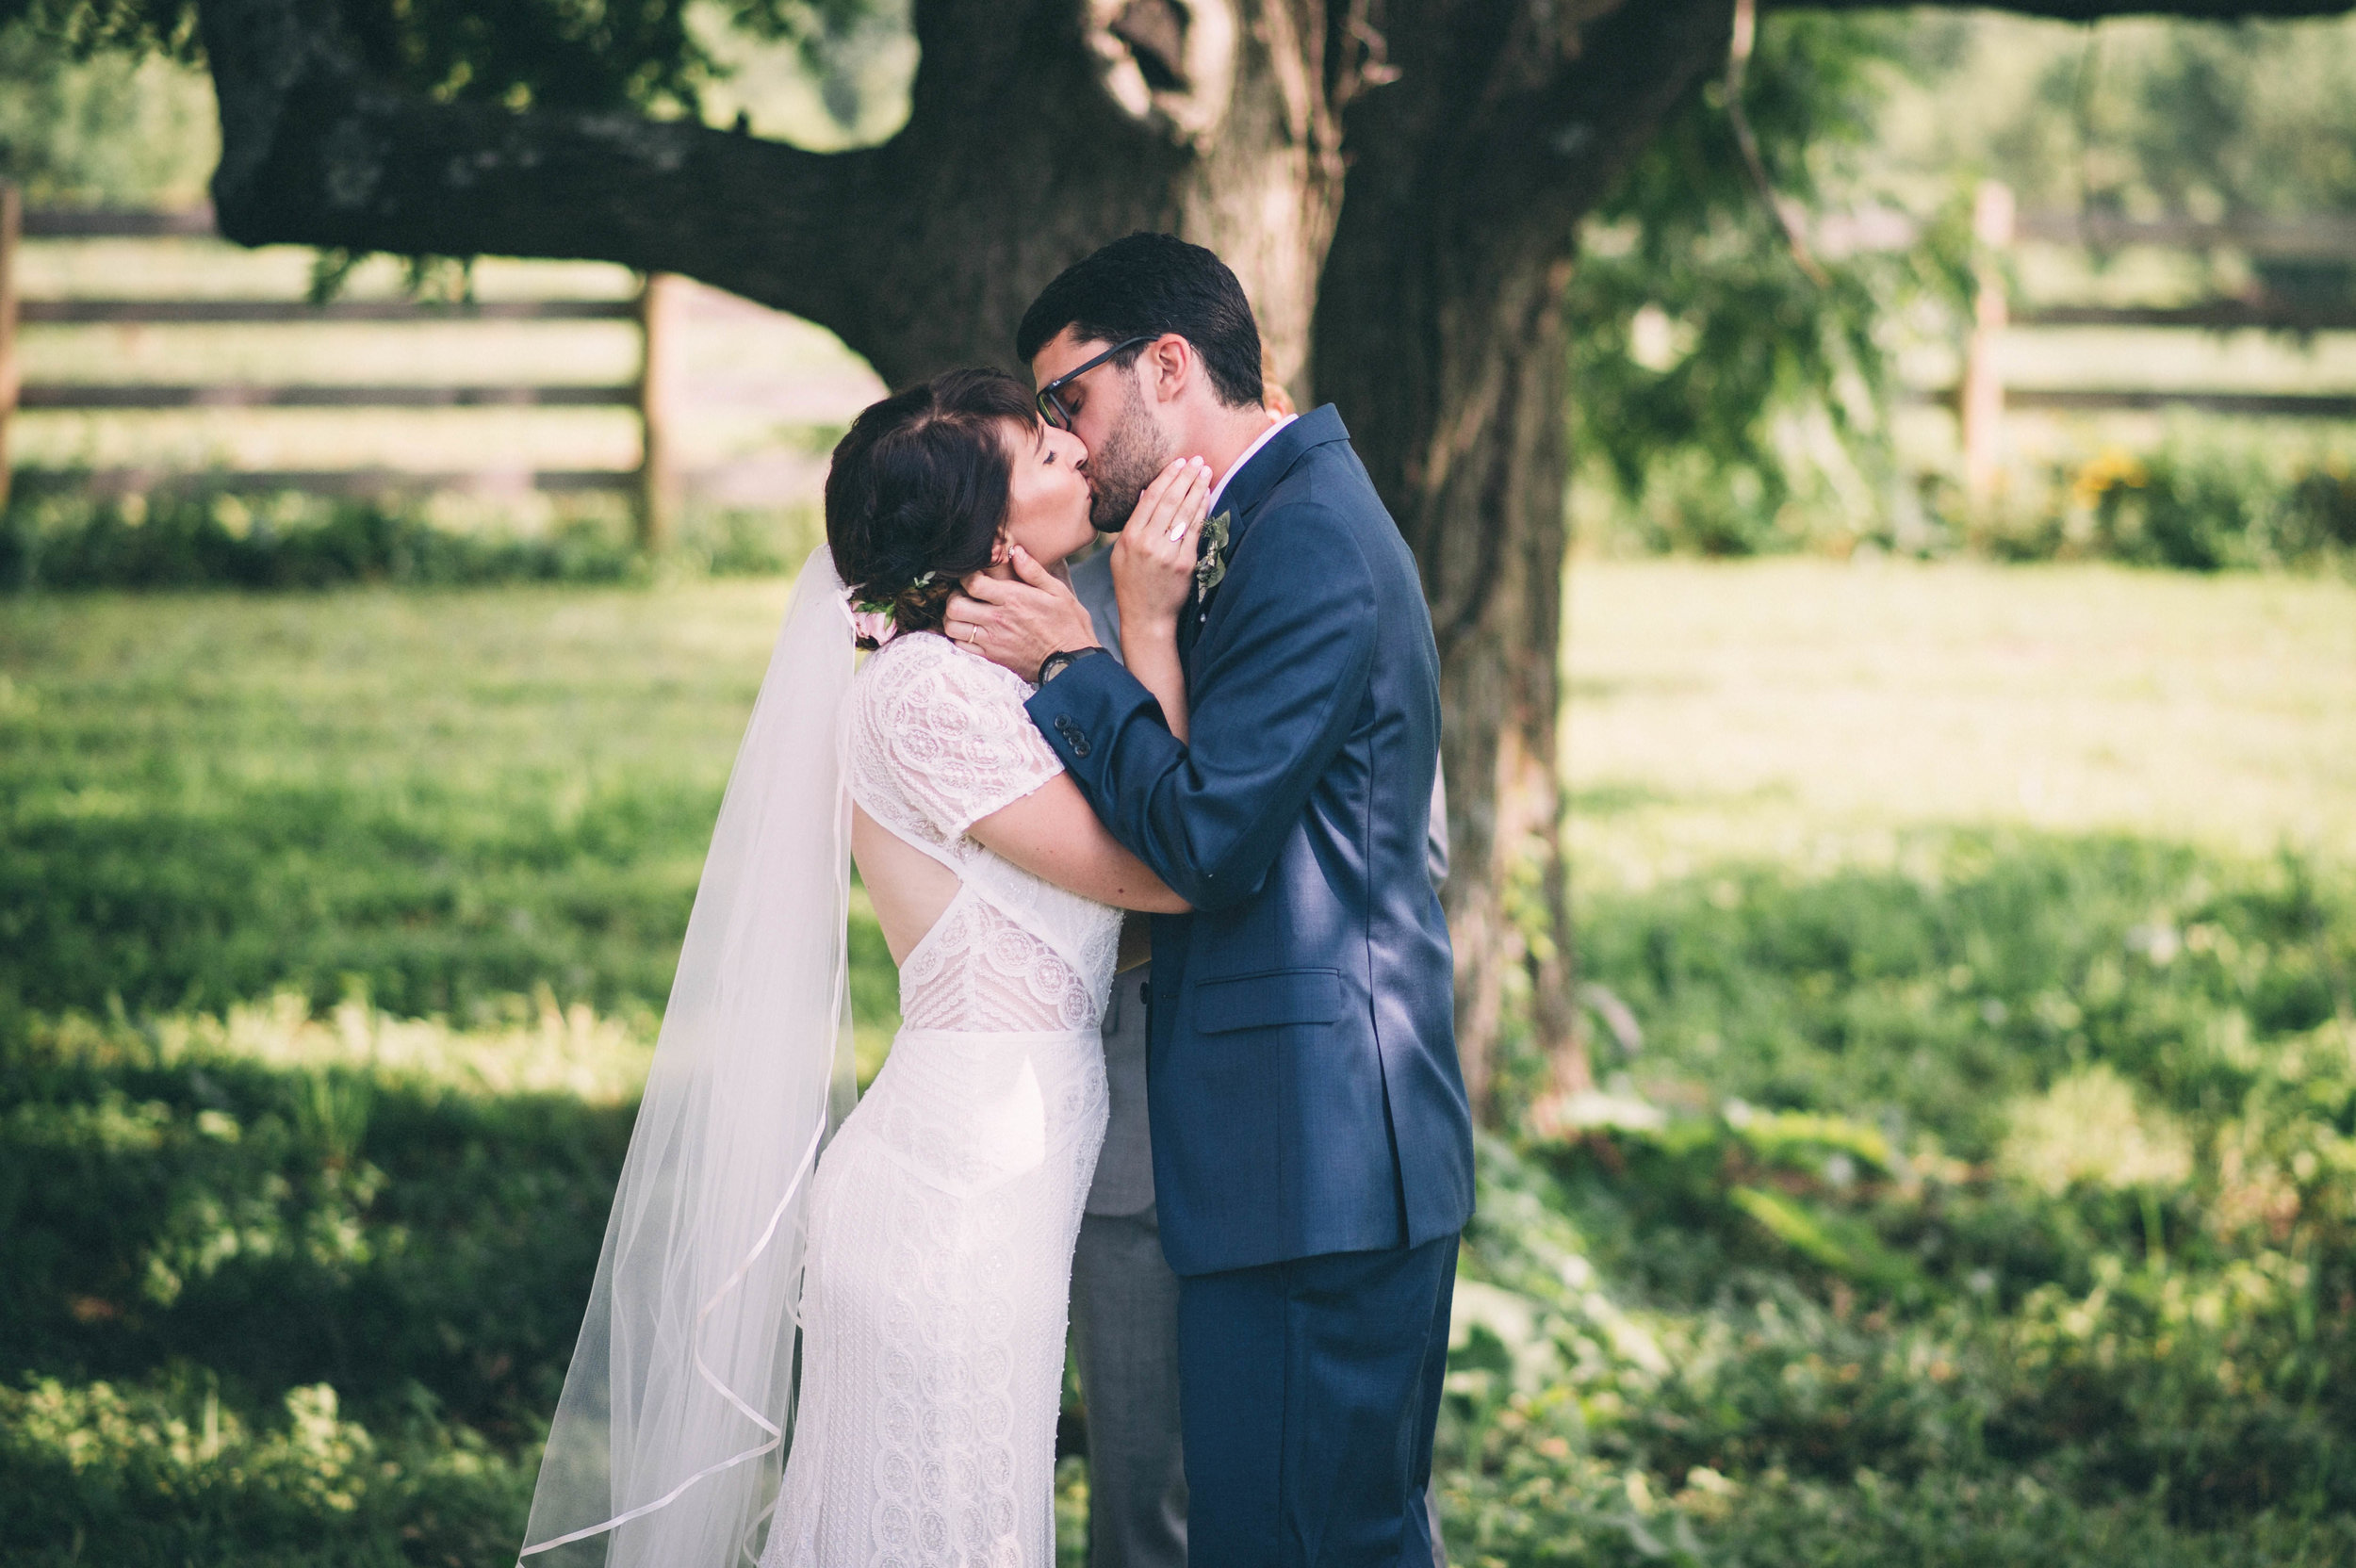 Sarah-Katherine-Davis-Photography-Wedding-Photographer-Louisville-Kentucky-Blackacre.jpg